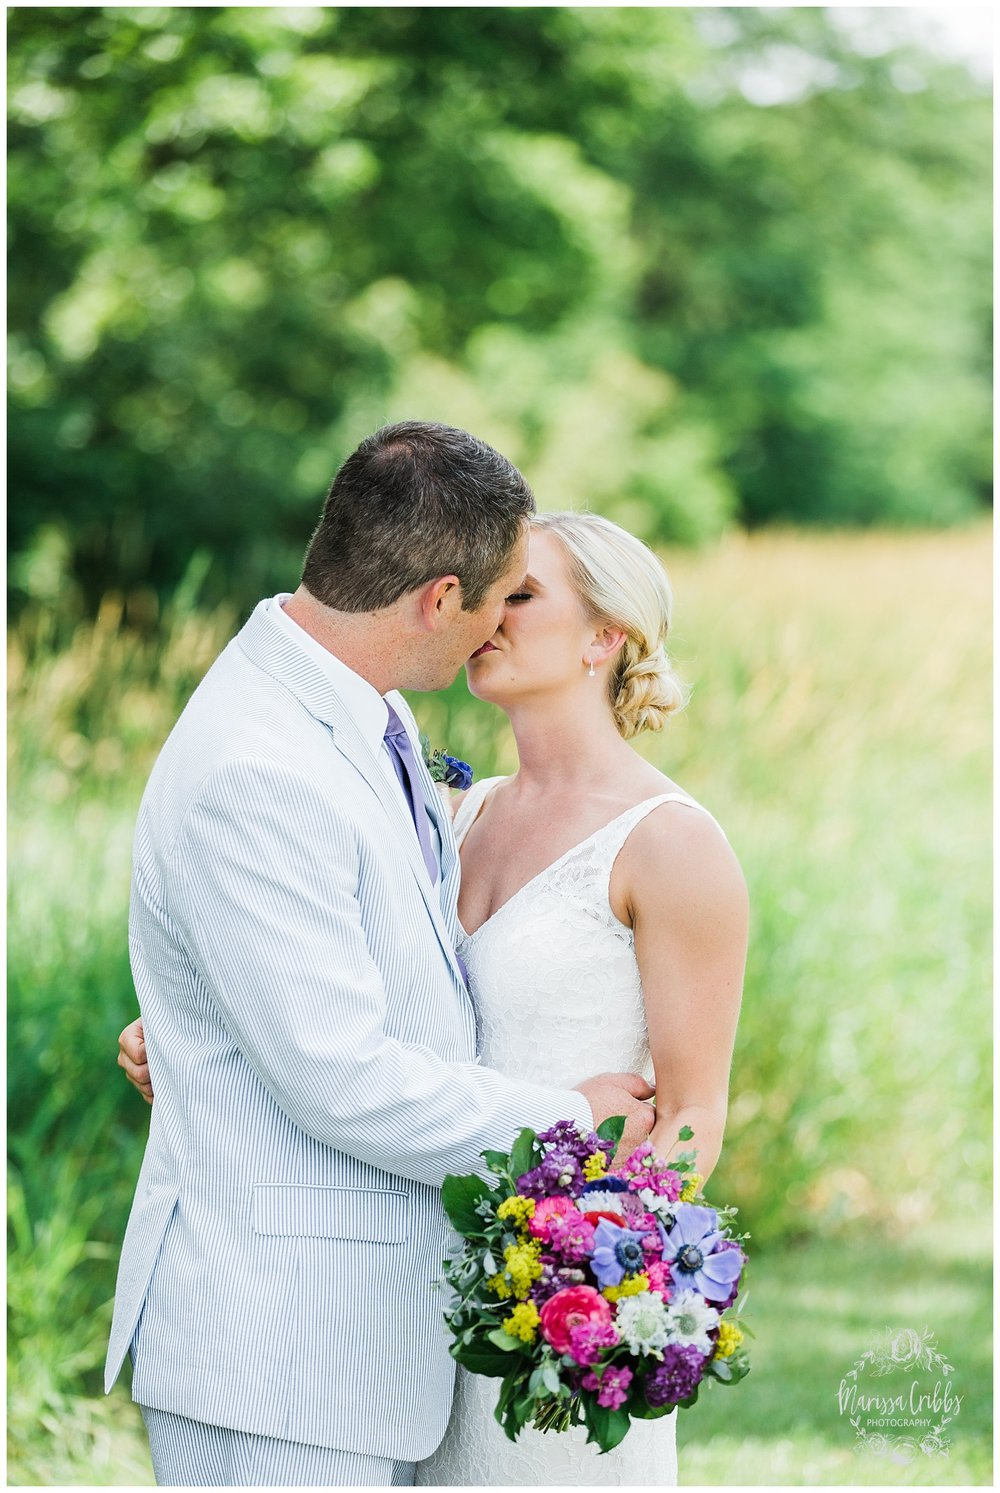 ALLISON & KEVIN WEDDING AT ST ANDREWS GOLF COURSE | MARISSA CRIBBS PHOTOGRAPHY_1701.jpg